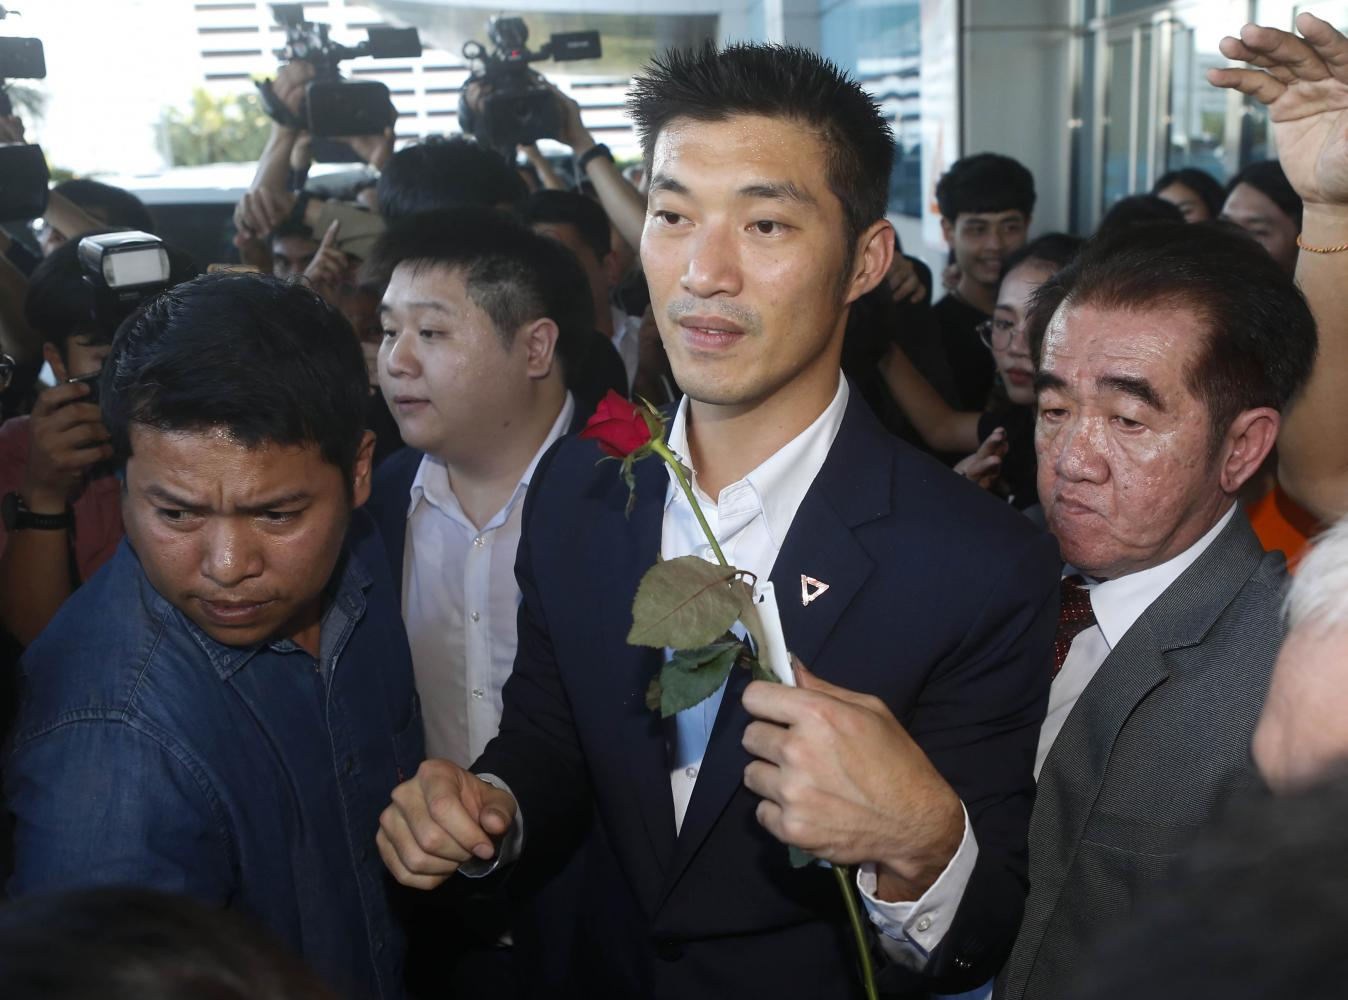 Future Forward Party leader Thanathorn Juangroongruangkit leaves the Constitutional Court after its ruling on Wednesday.Pattarapong Chatpattarasill